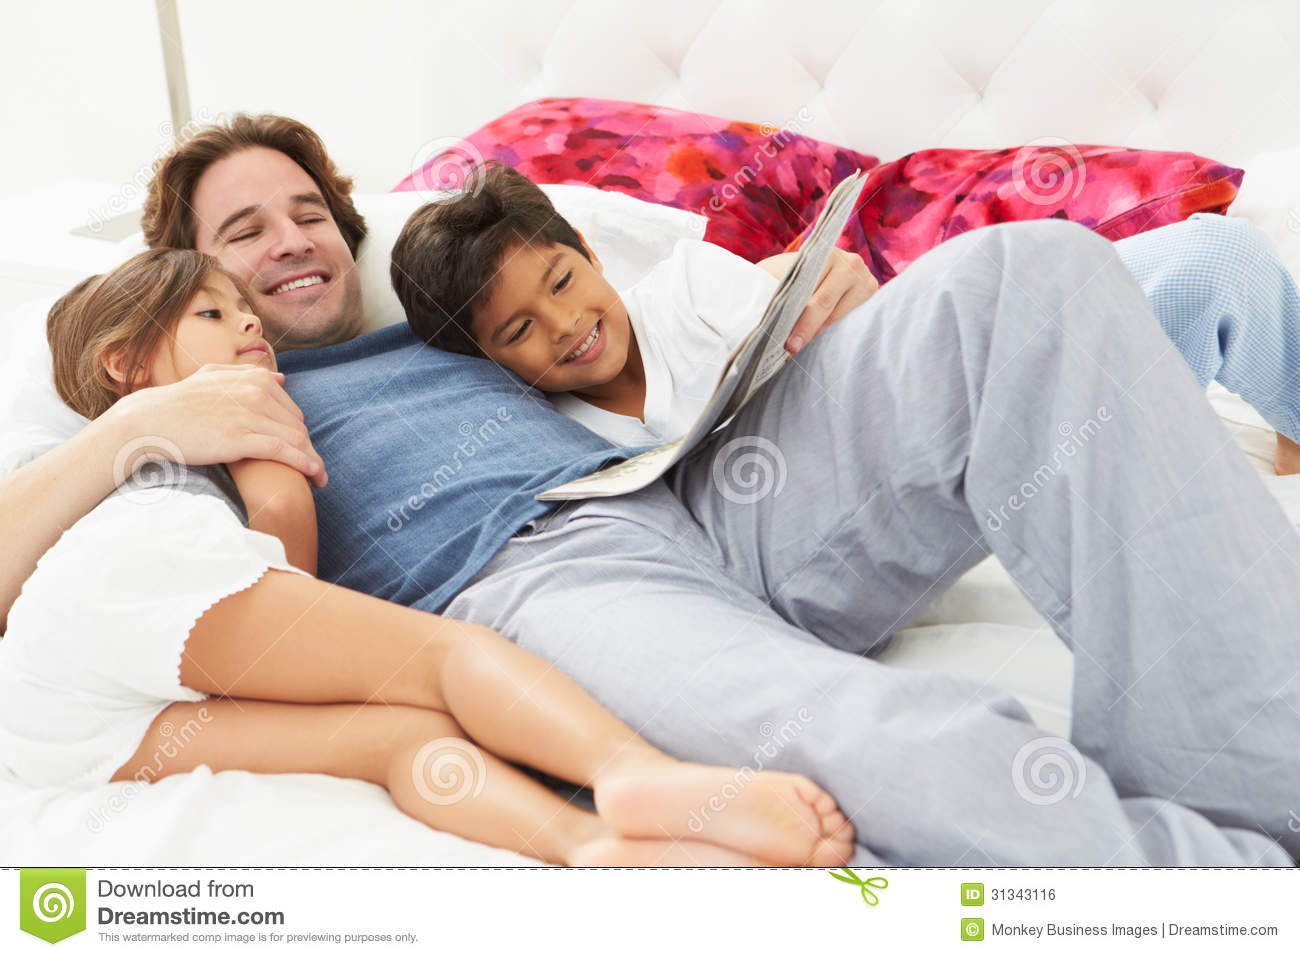 Girl And Boy In Bed Together